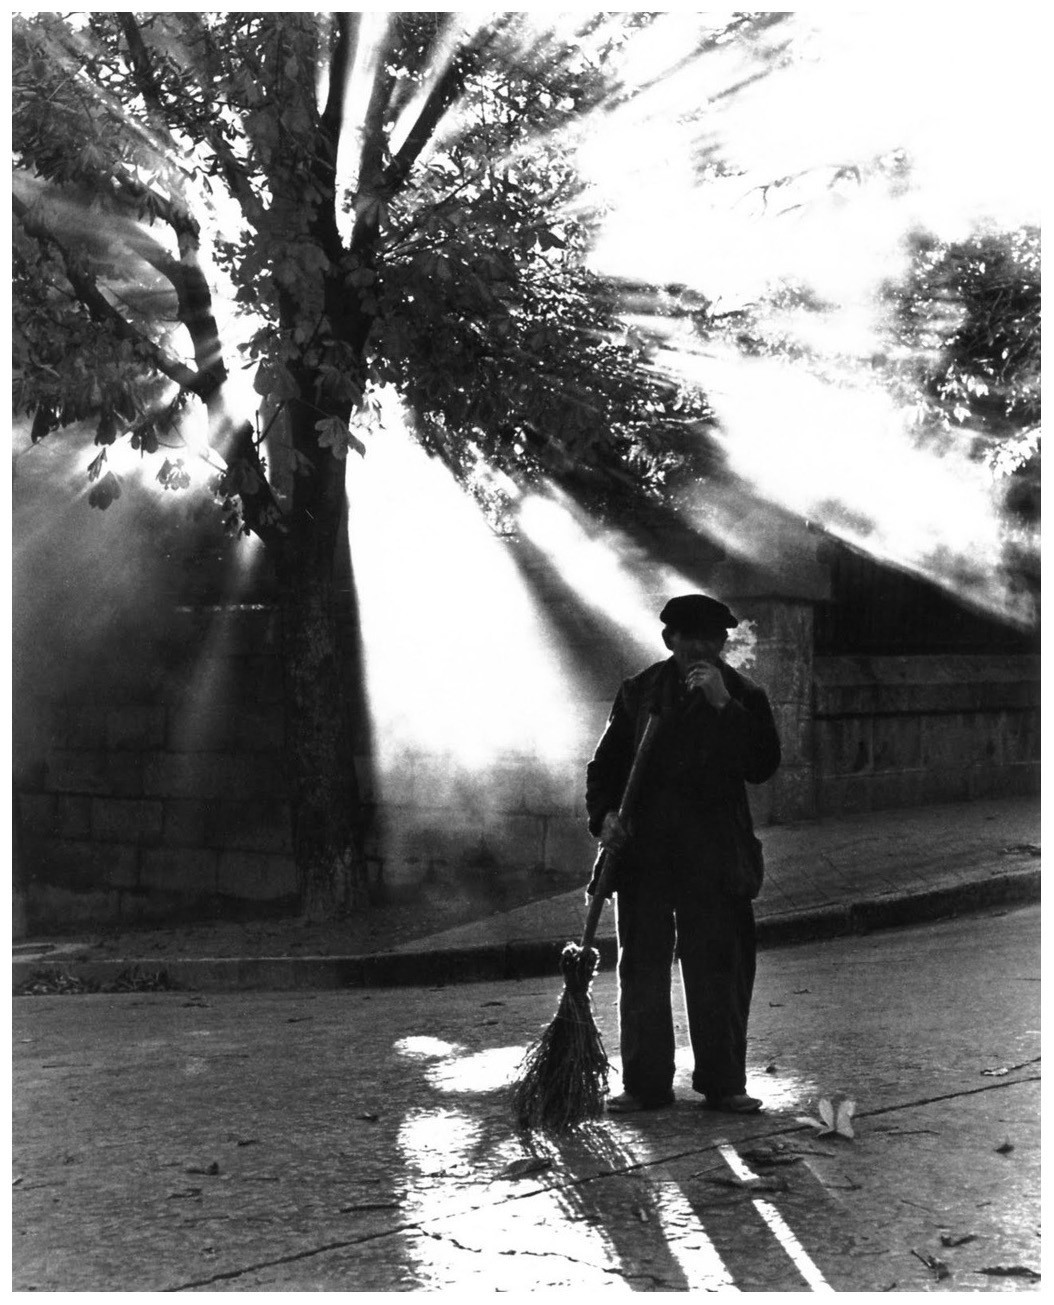 Street sweeper in Valencia, Spain (1966). Photo taken by Barry Goldwater